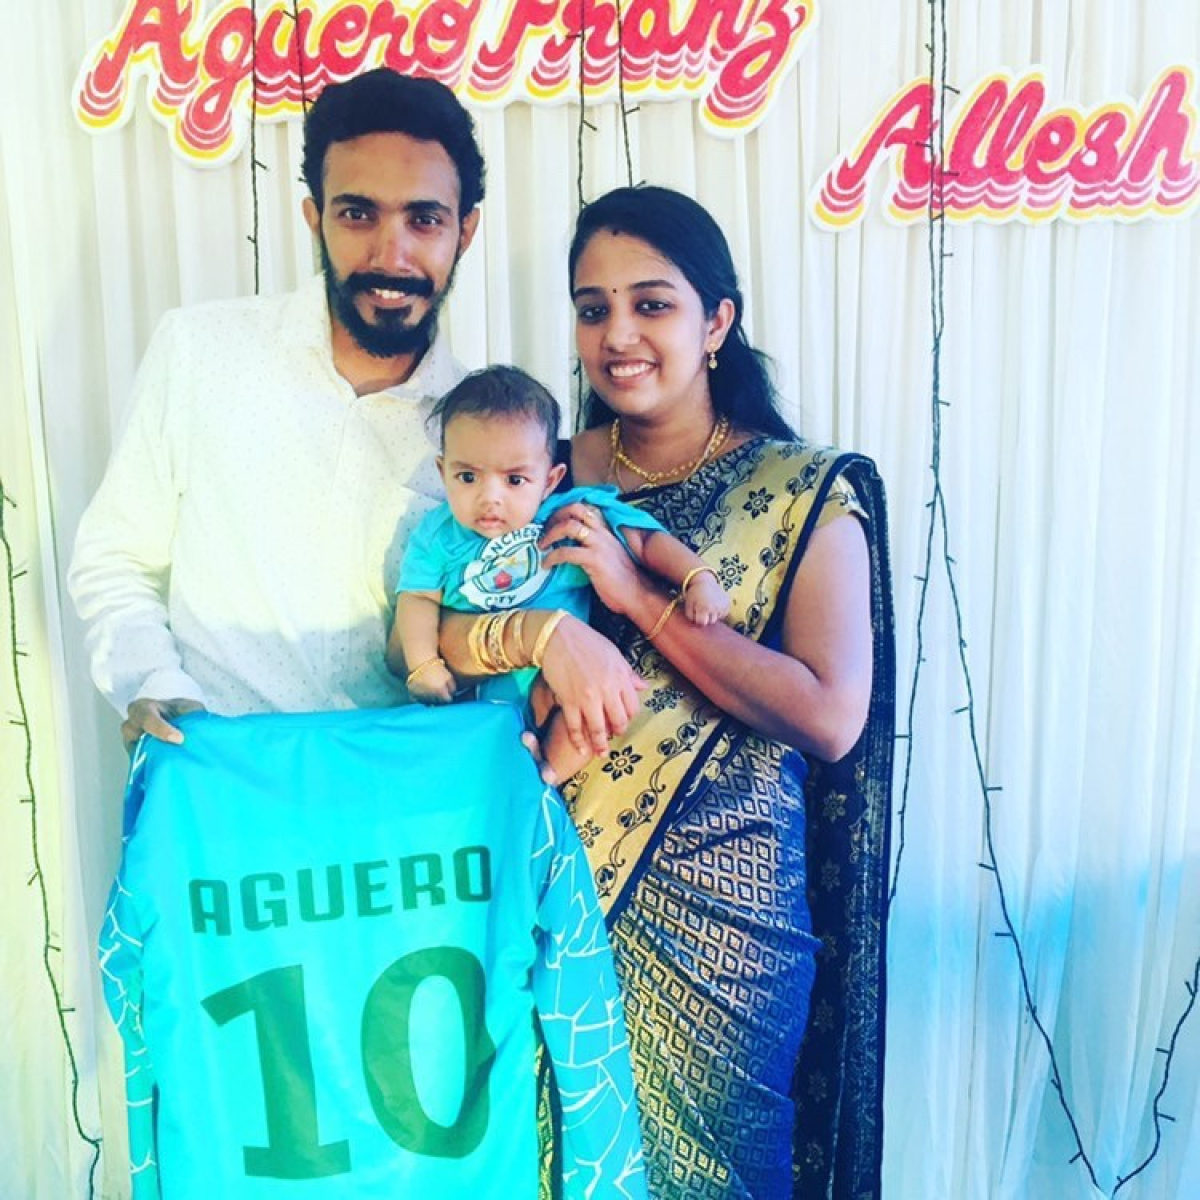 Indian Manchester City fan names newborn son after club's prolific striker